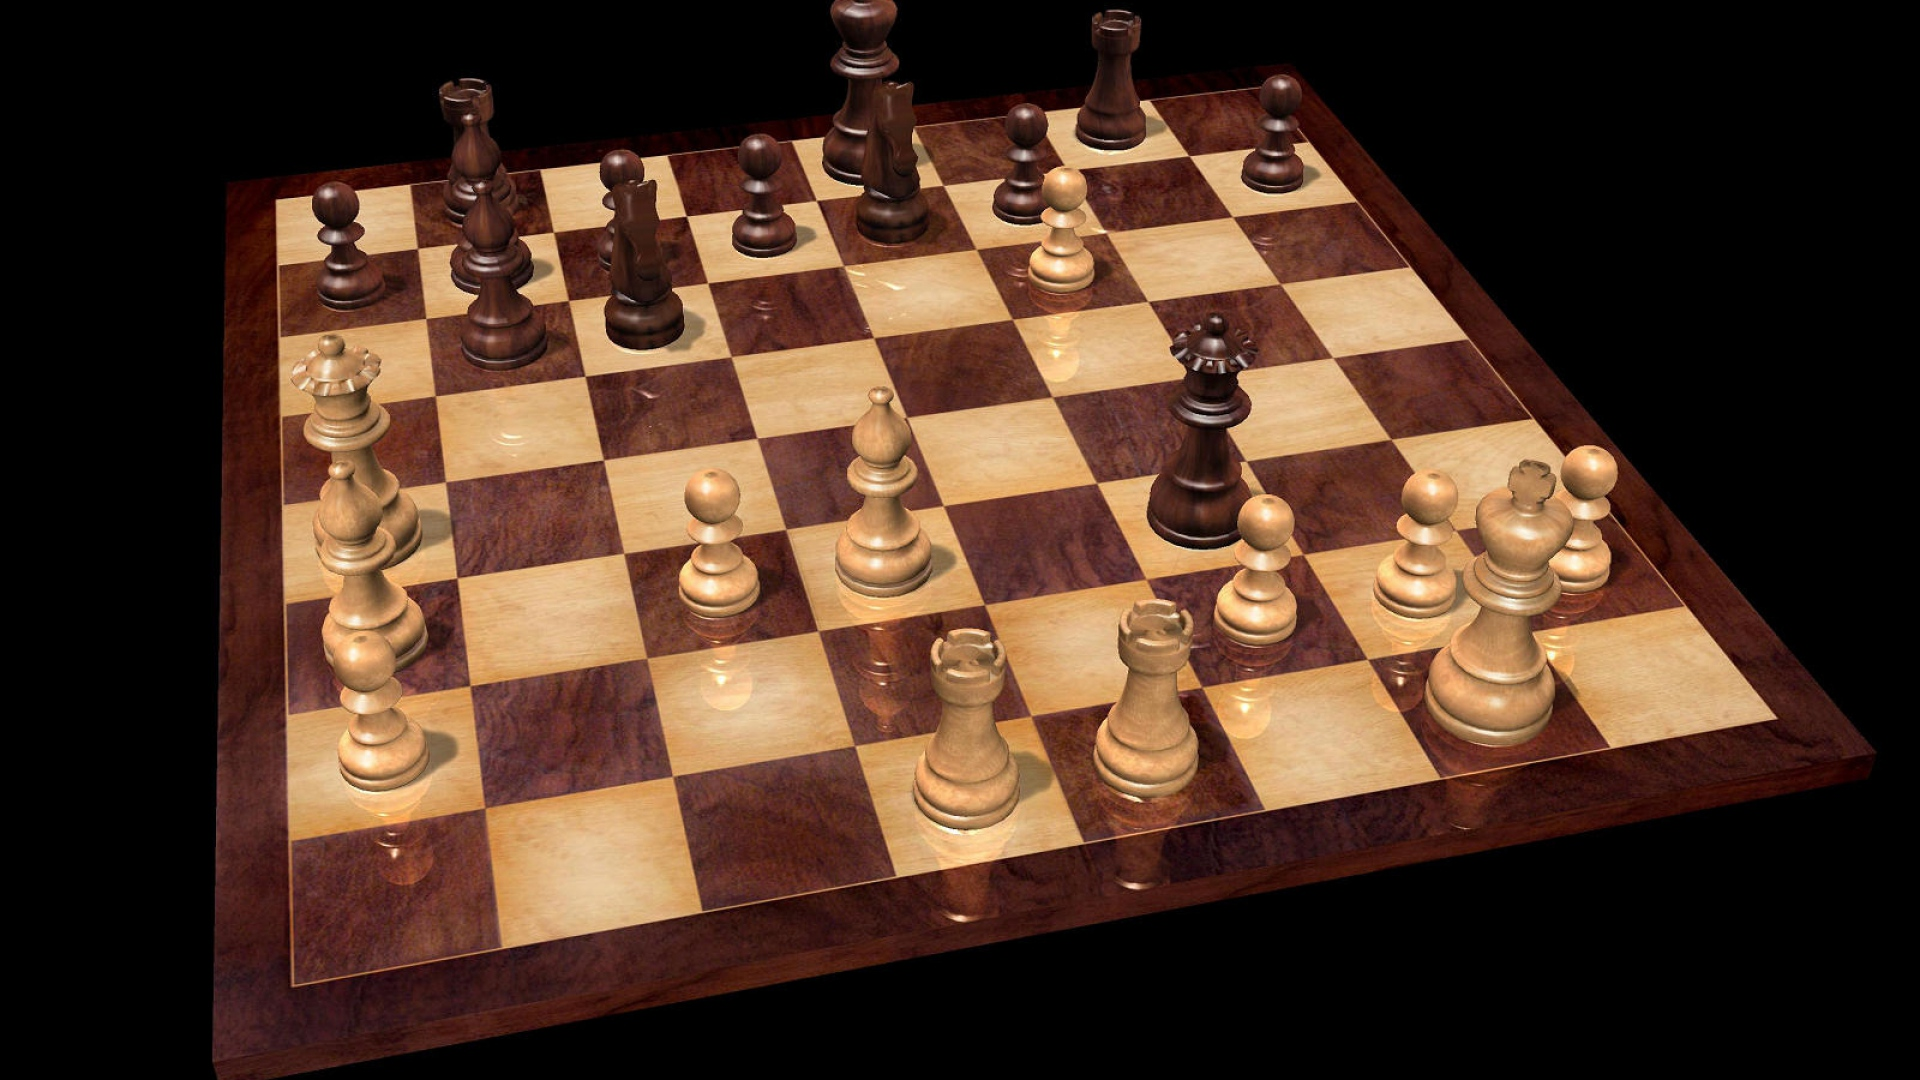 Download Wallpaper 1920x1080 Chess Board Game Party Figures Full